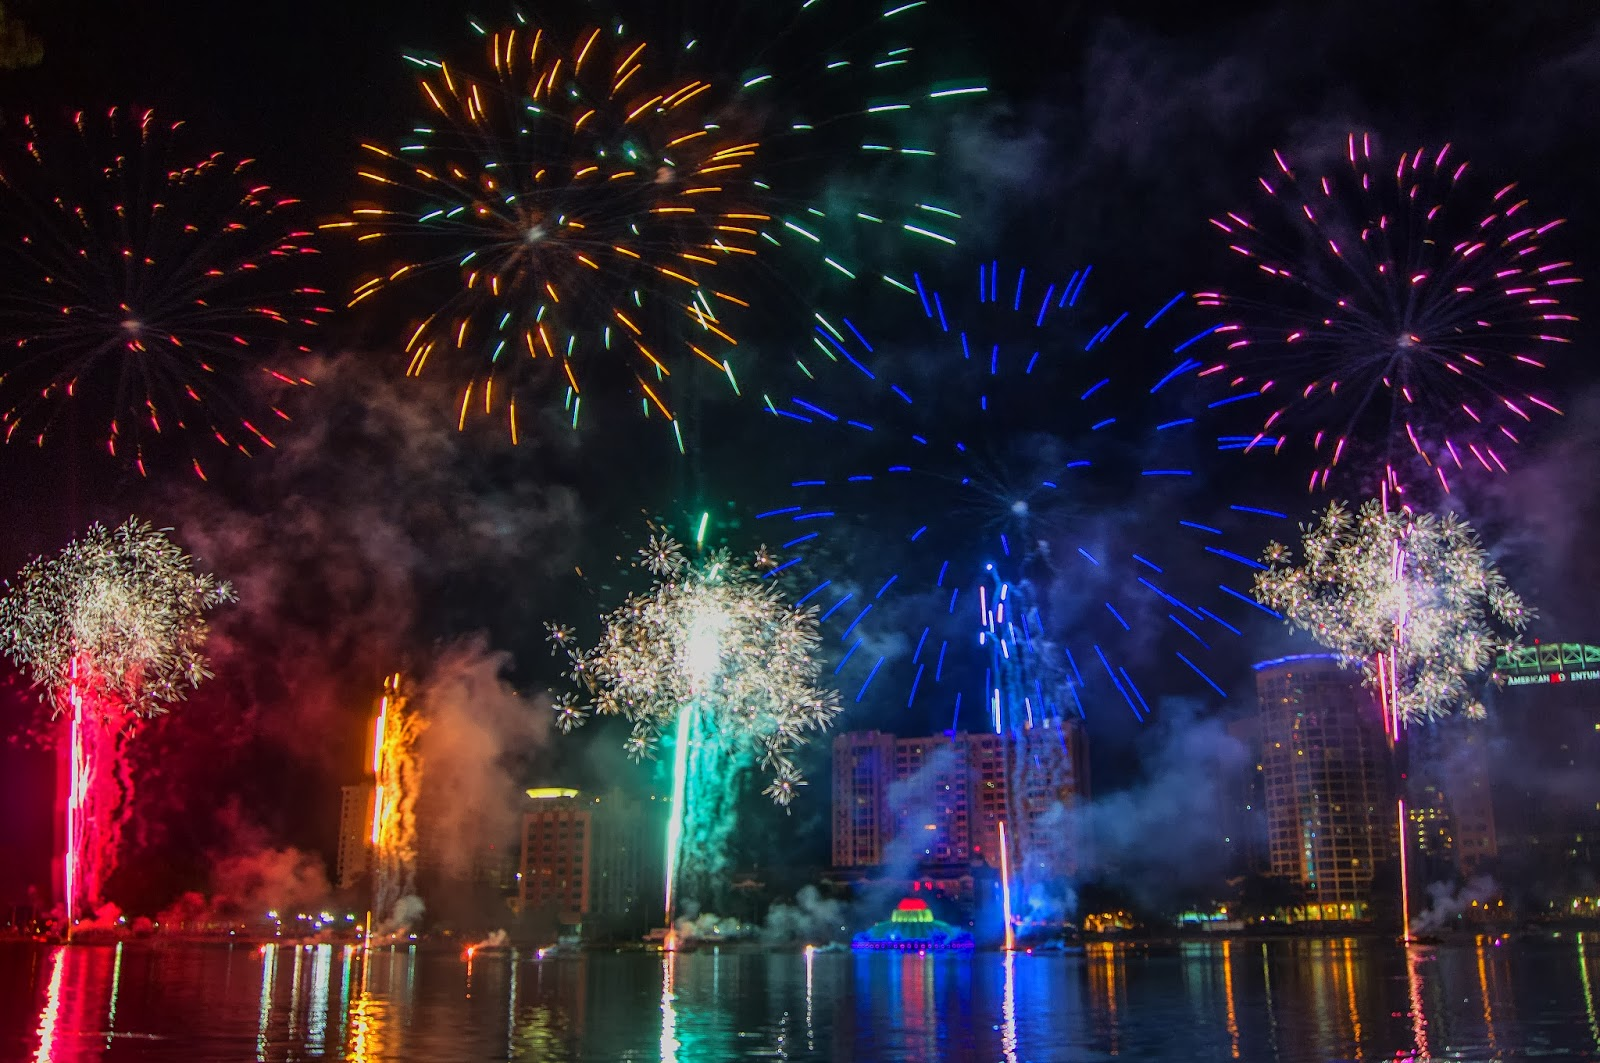 Rainbow Fireworks Celebration Colorful Abstract Image With: Fireworks Over Lake Eola: Come Out With Pride